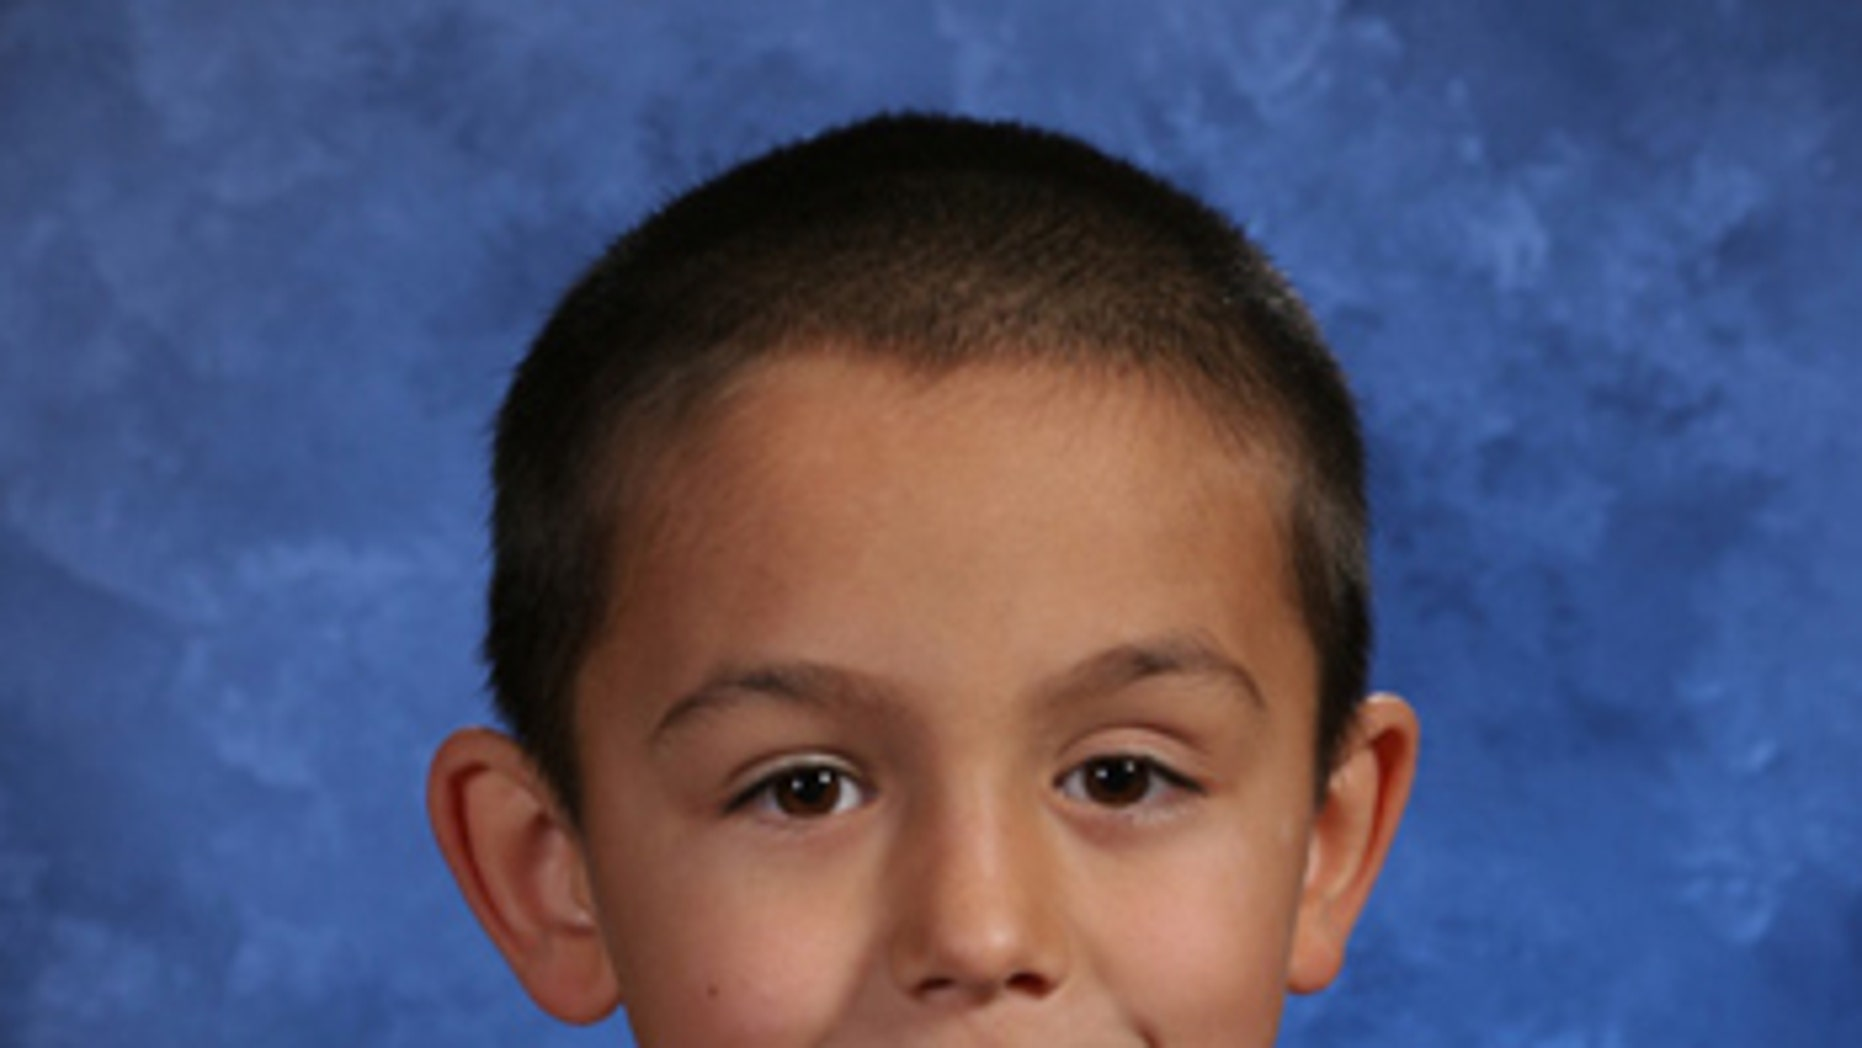 Idaho police fear a 'tragic event' in the disappearance of 8-year-old Robert Manwill.